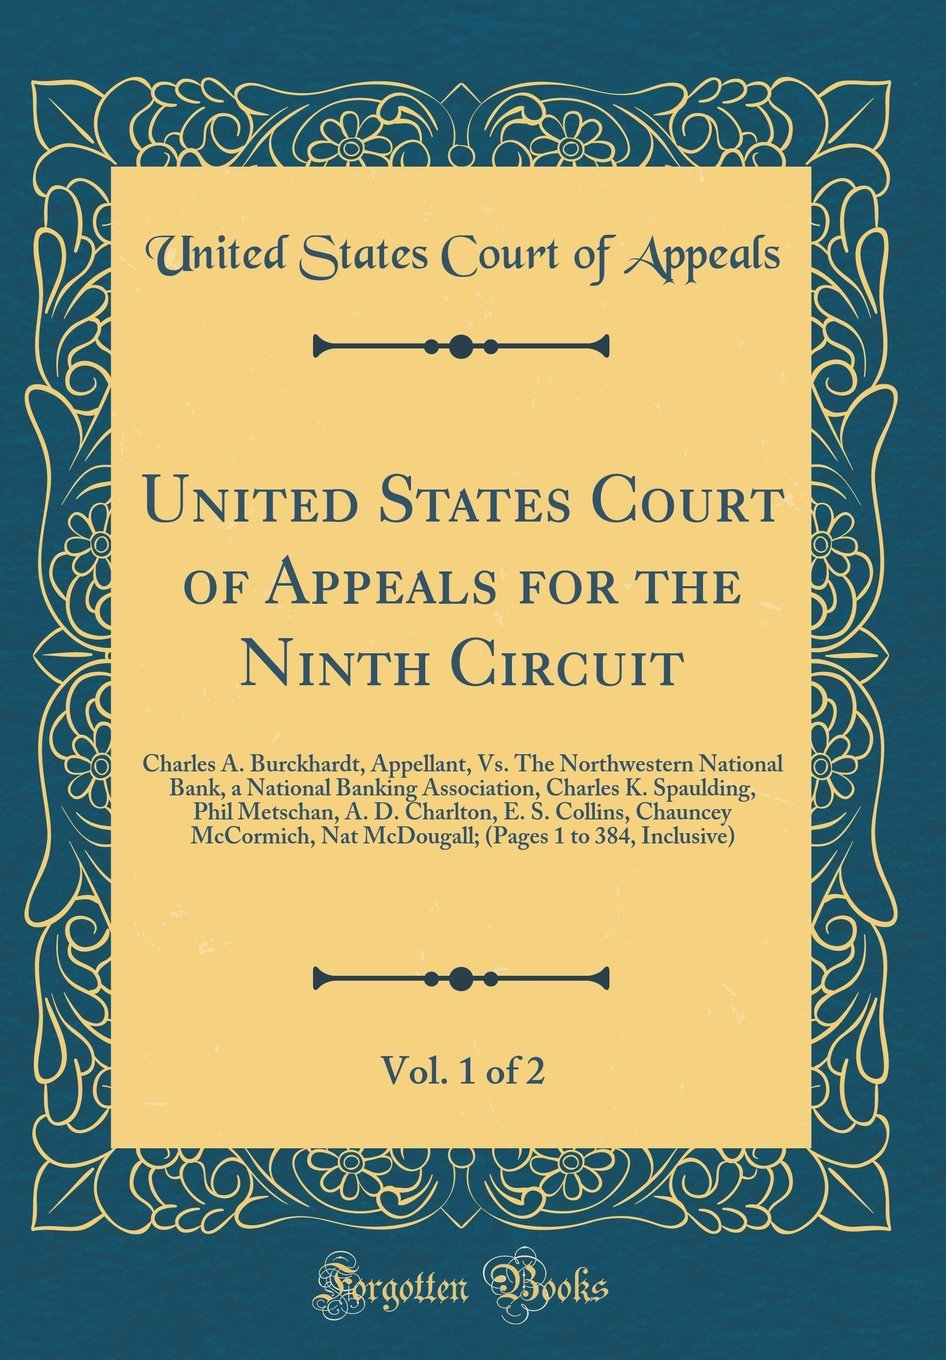 Download United States Court of Appeals for the Ninth Circuit, Vol. 1 of 2: Charles A. Burckhardt, Appellant, Vs. The Northwestern National Bank, a National ... Charlton, E. S. Collins, Chauncey McCormich pdf epub